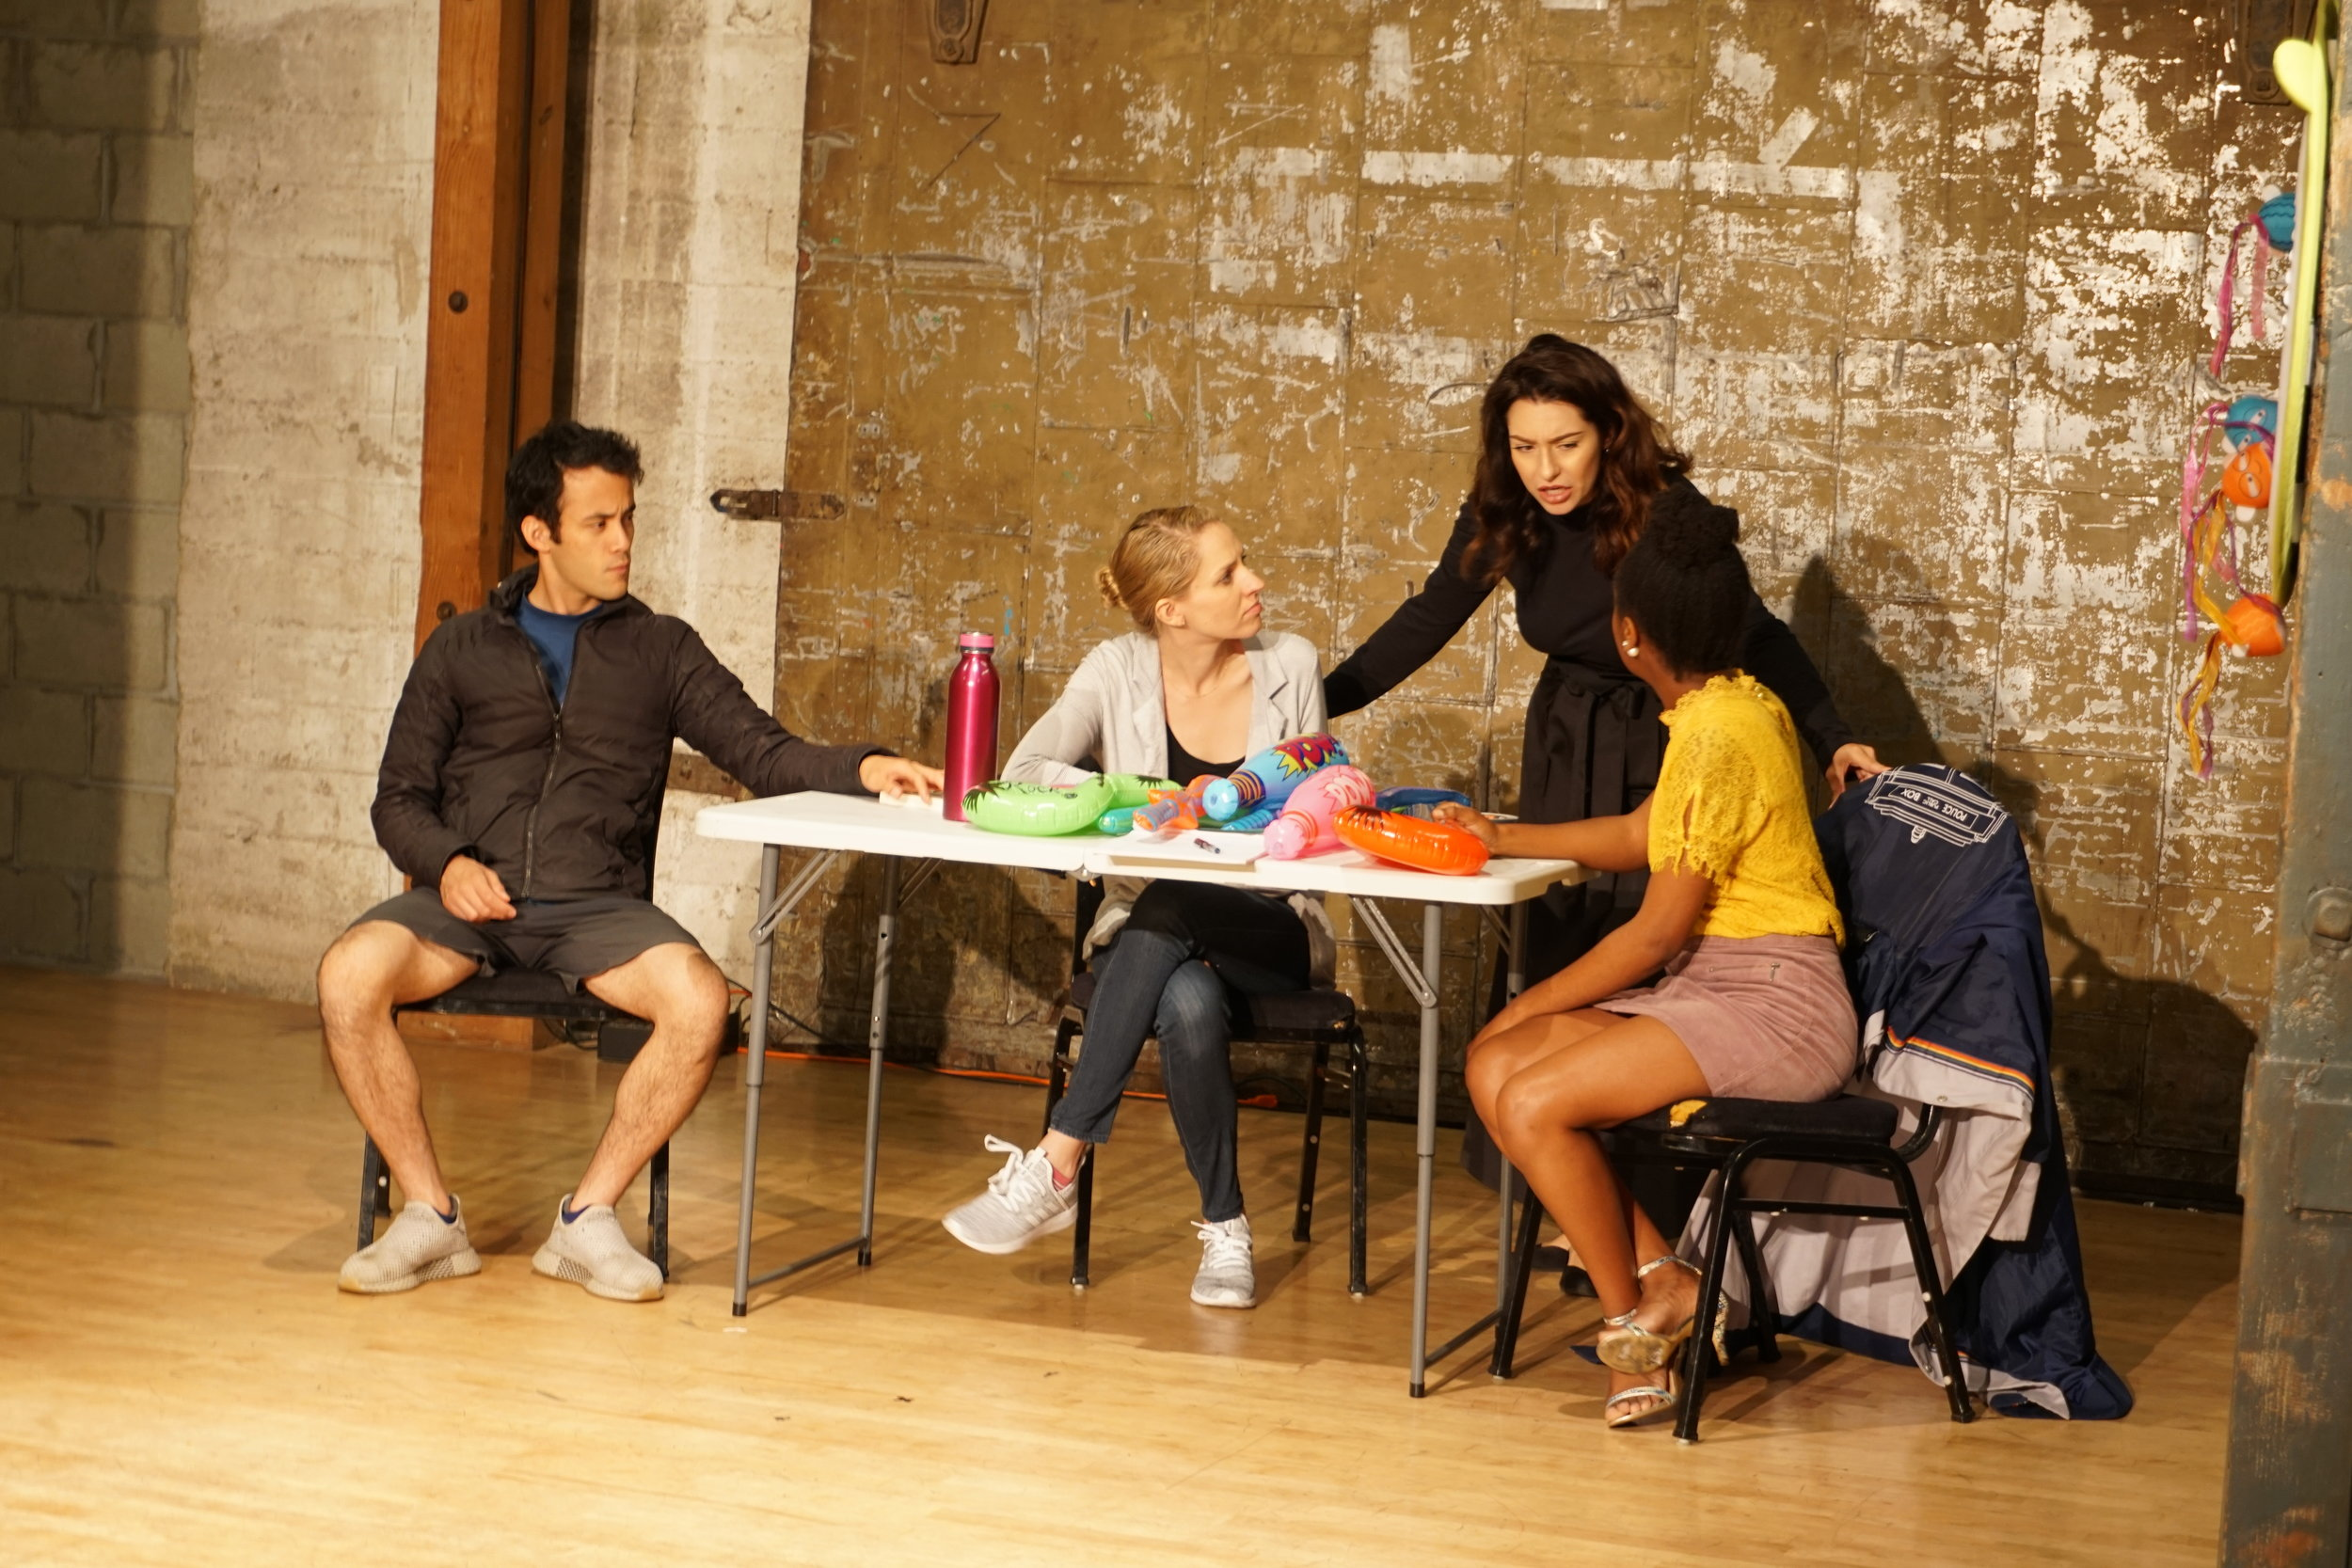 "Tony (David Castillo), Olivia (Emily Thebaut), Cybil (Maria Dominique Lopez), and Melody (Sherley-Ann Belleus) puzzle over the perfect game idea in ""The Girlfriend,"" the first collaboration between Amy Punt and me, produced with New Opera West. (May 2019)"